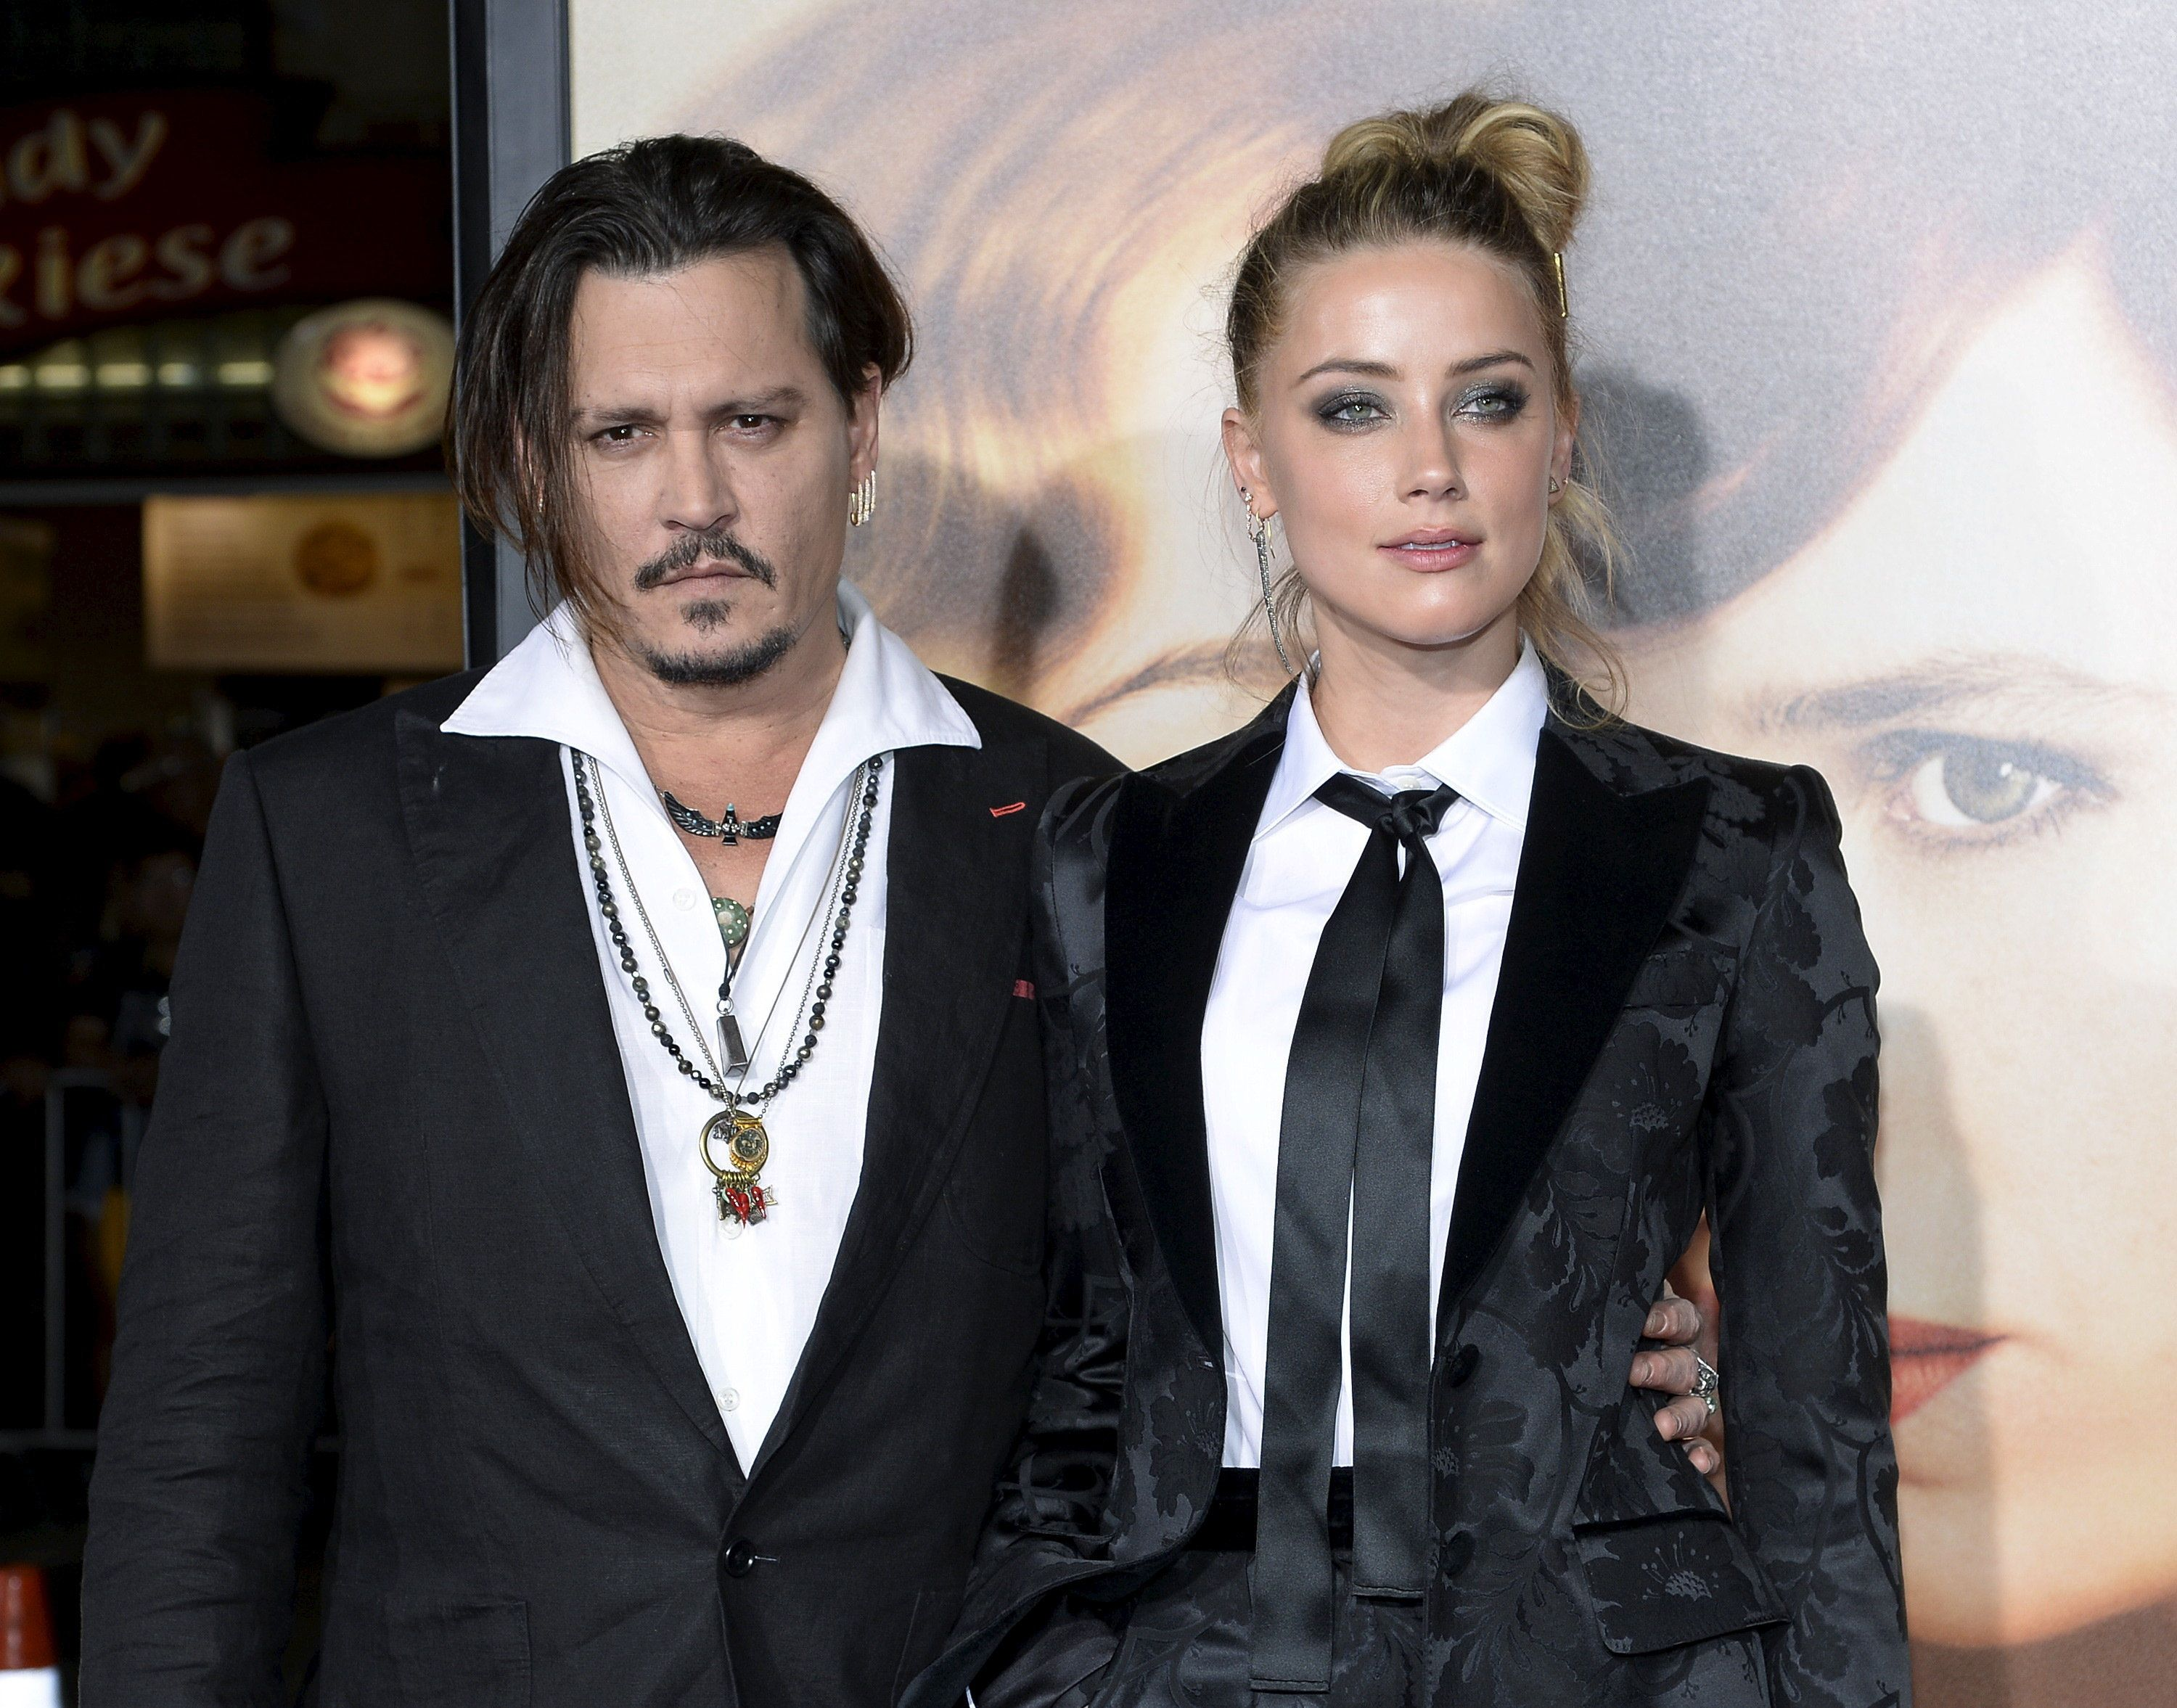 Amber Heard Responds To JK Rowling Statement On Johnny Depp's 'Fantastic Beasts' Role